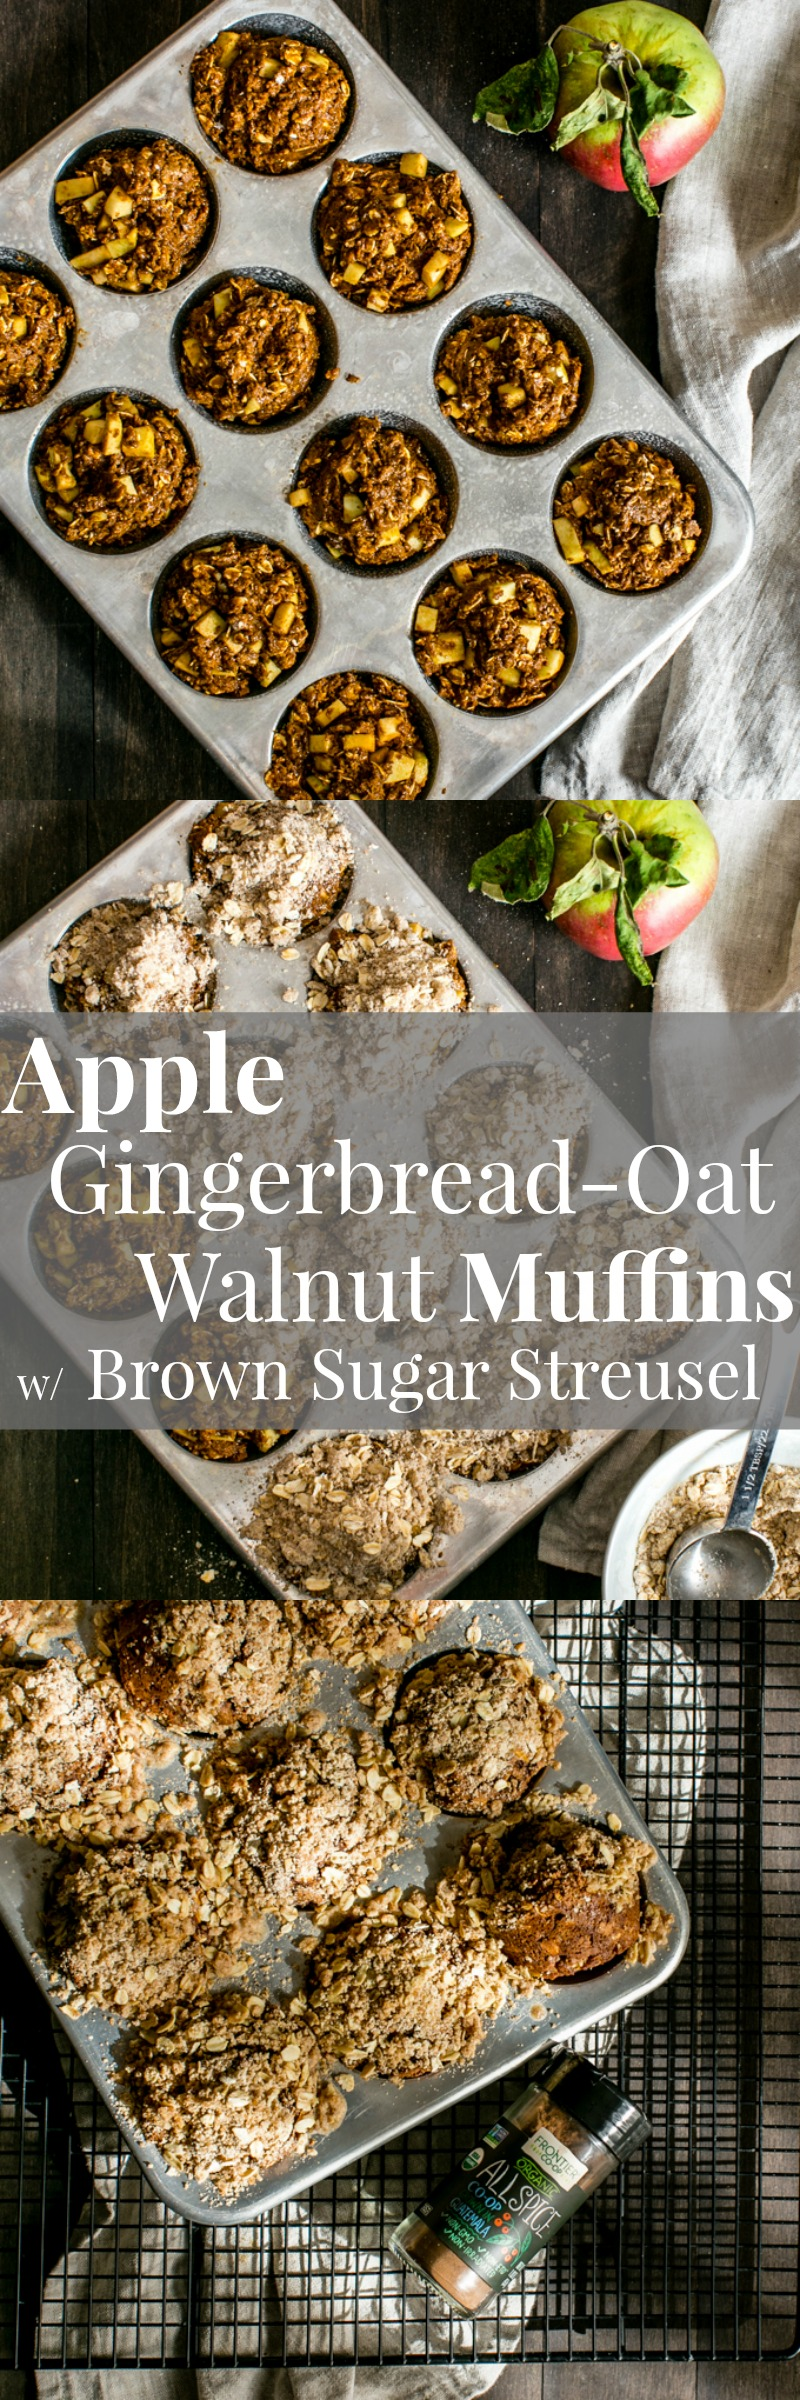 Warming and cozy Vegan Apple Gingerbread-Oat Walnut Muffins with Brown Sugar Streusel are easy to make and freezer friendly! Welcome fall! #ad